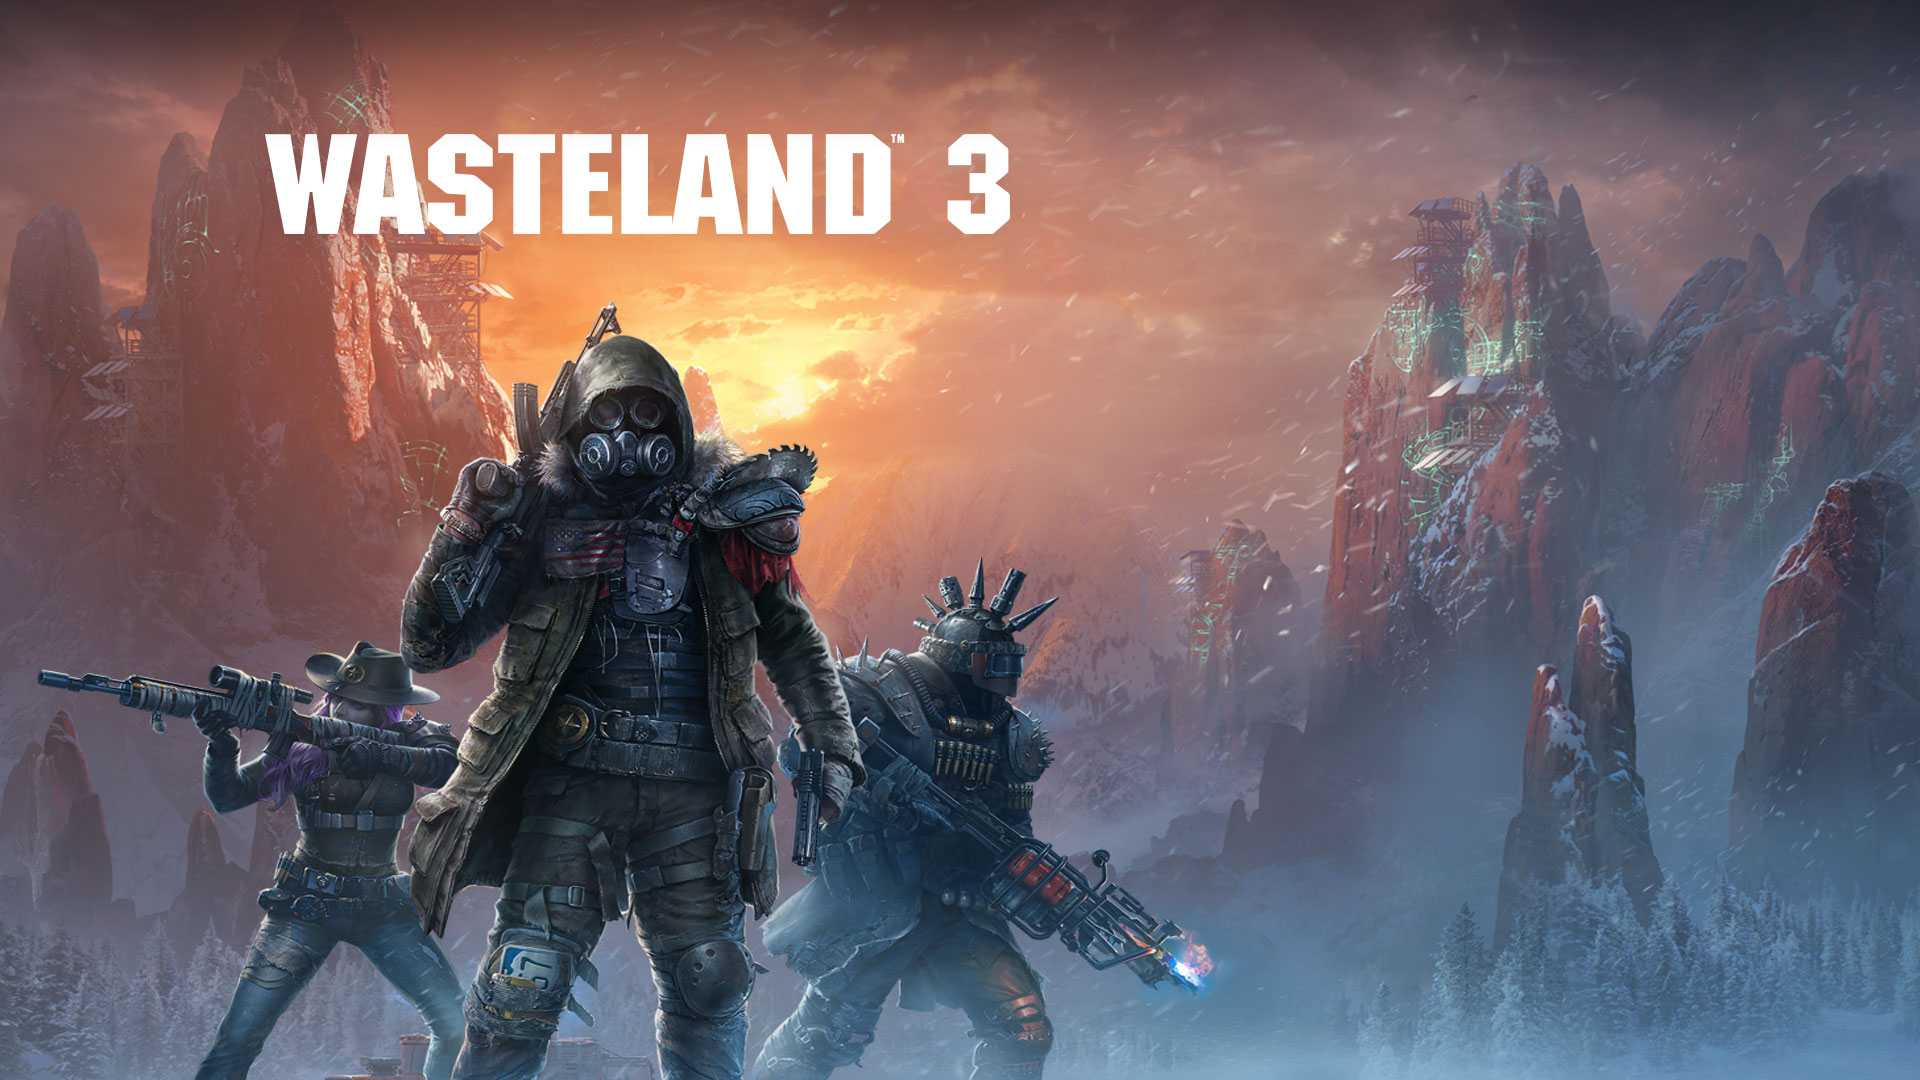 Wasteland 3, 3 heavily armed characters in a snowstorm wearing gas masks